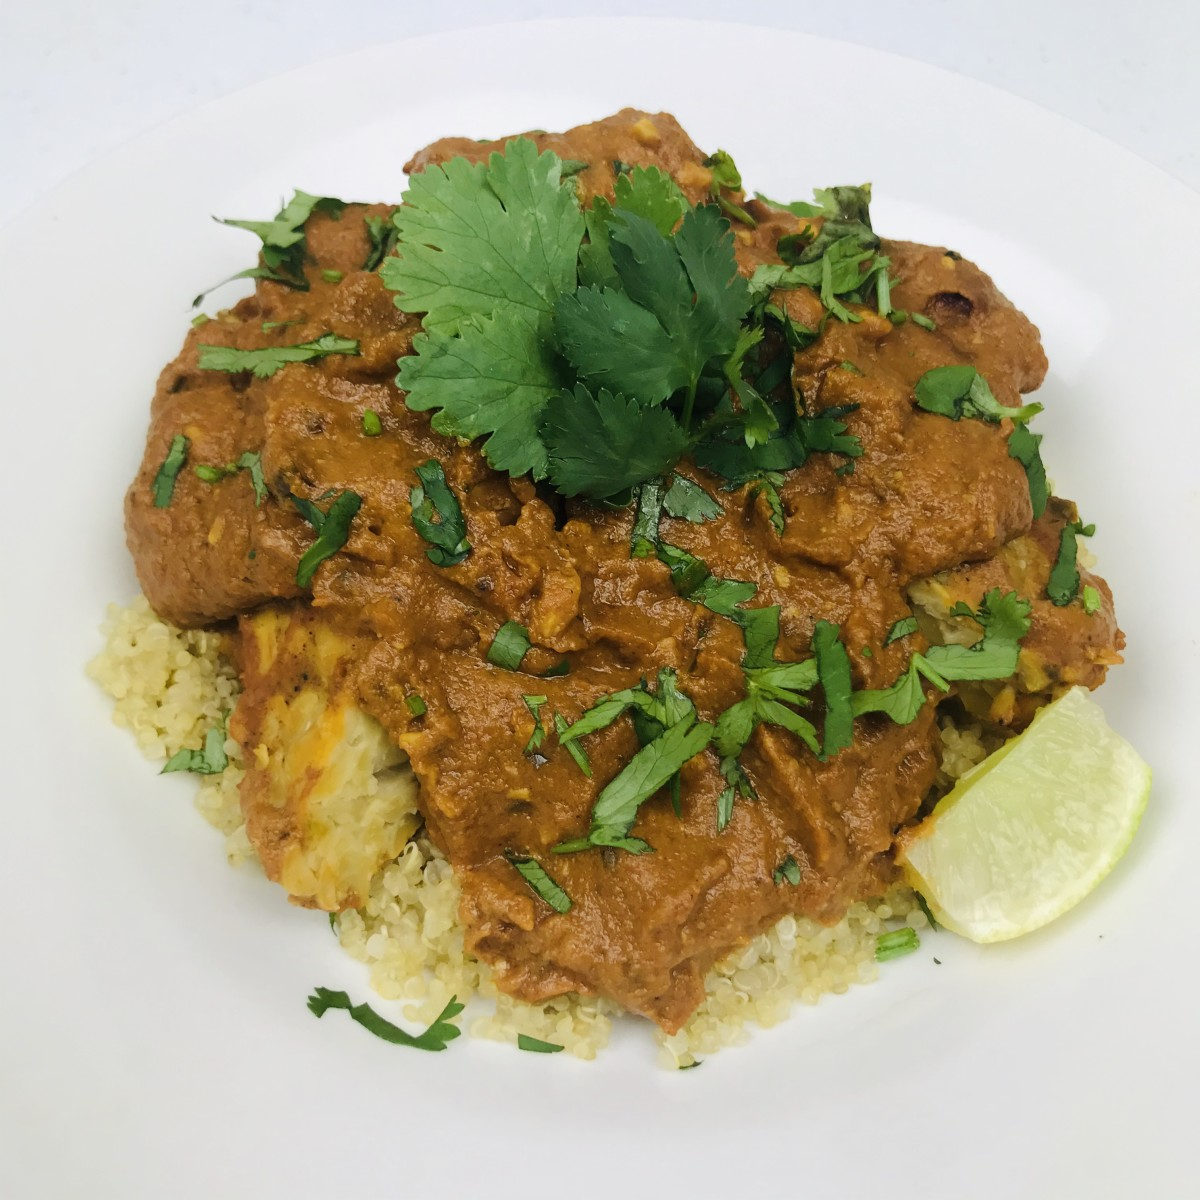 Tempeh tikka masala served with quinoa.